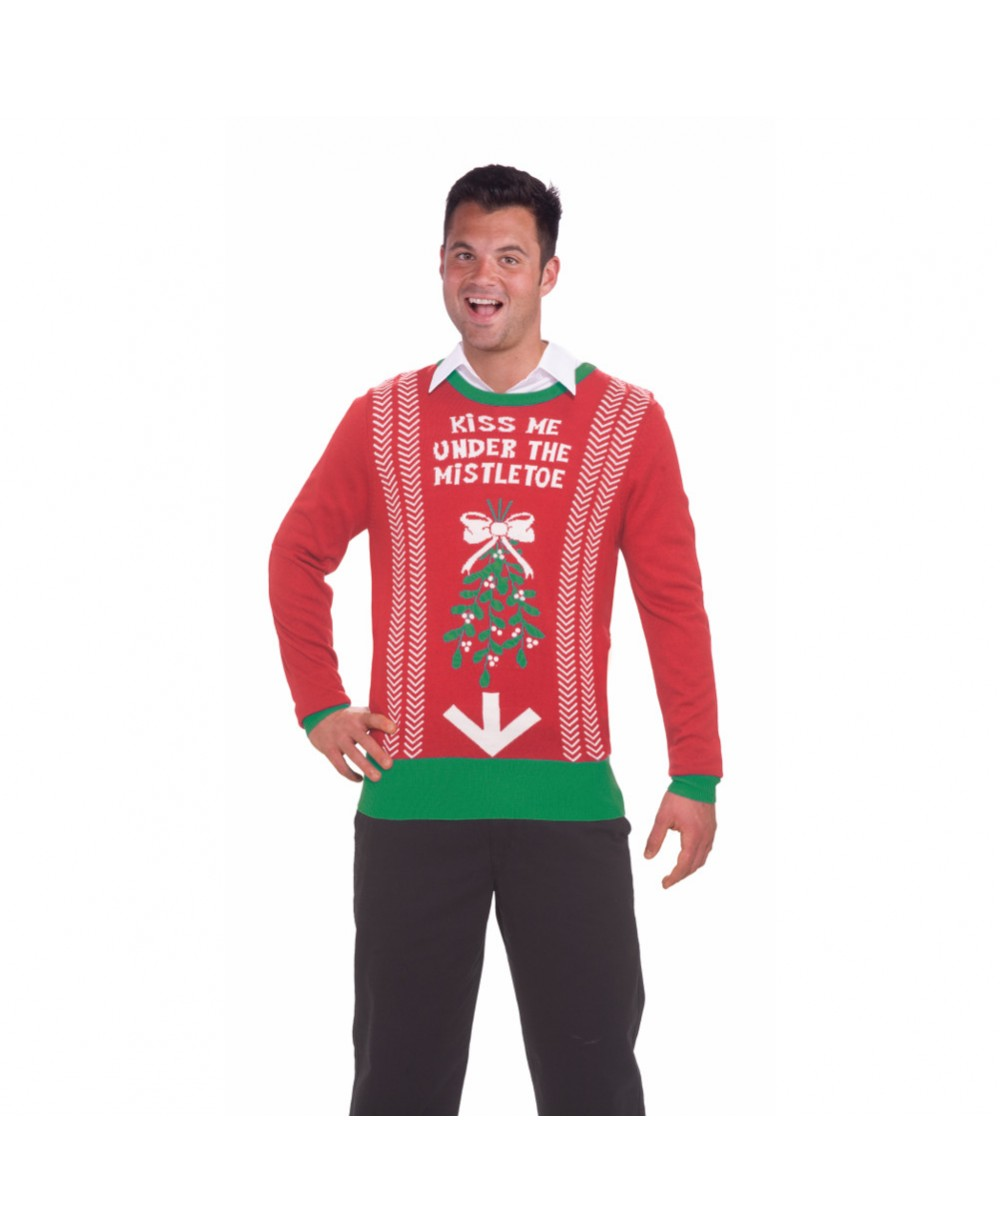 Mens Christmas Sweater.Kiss Me Under The Mistletoe Ugly Christmas Sweater